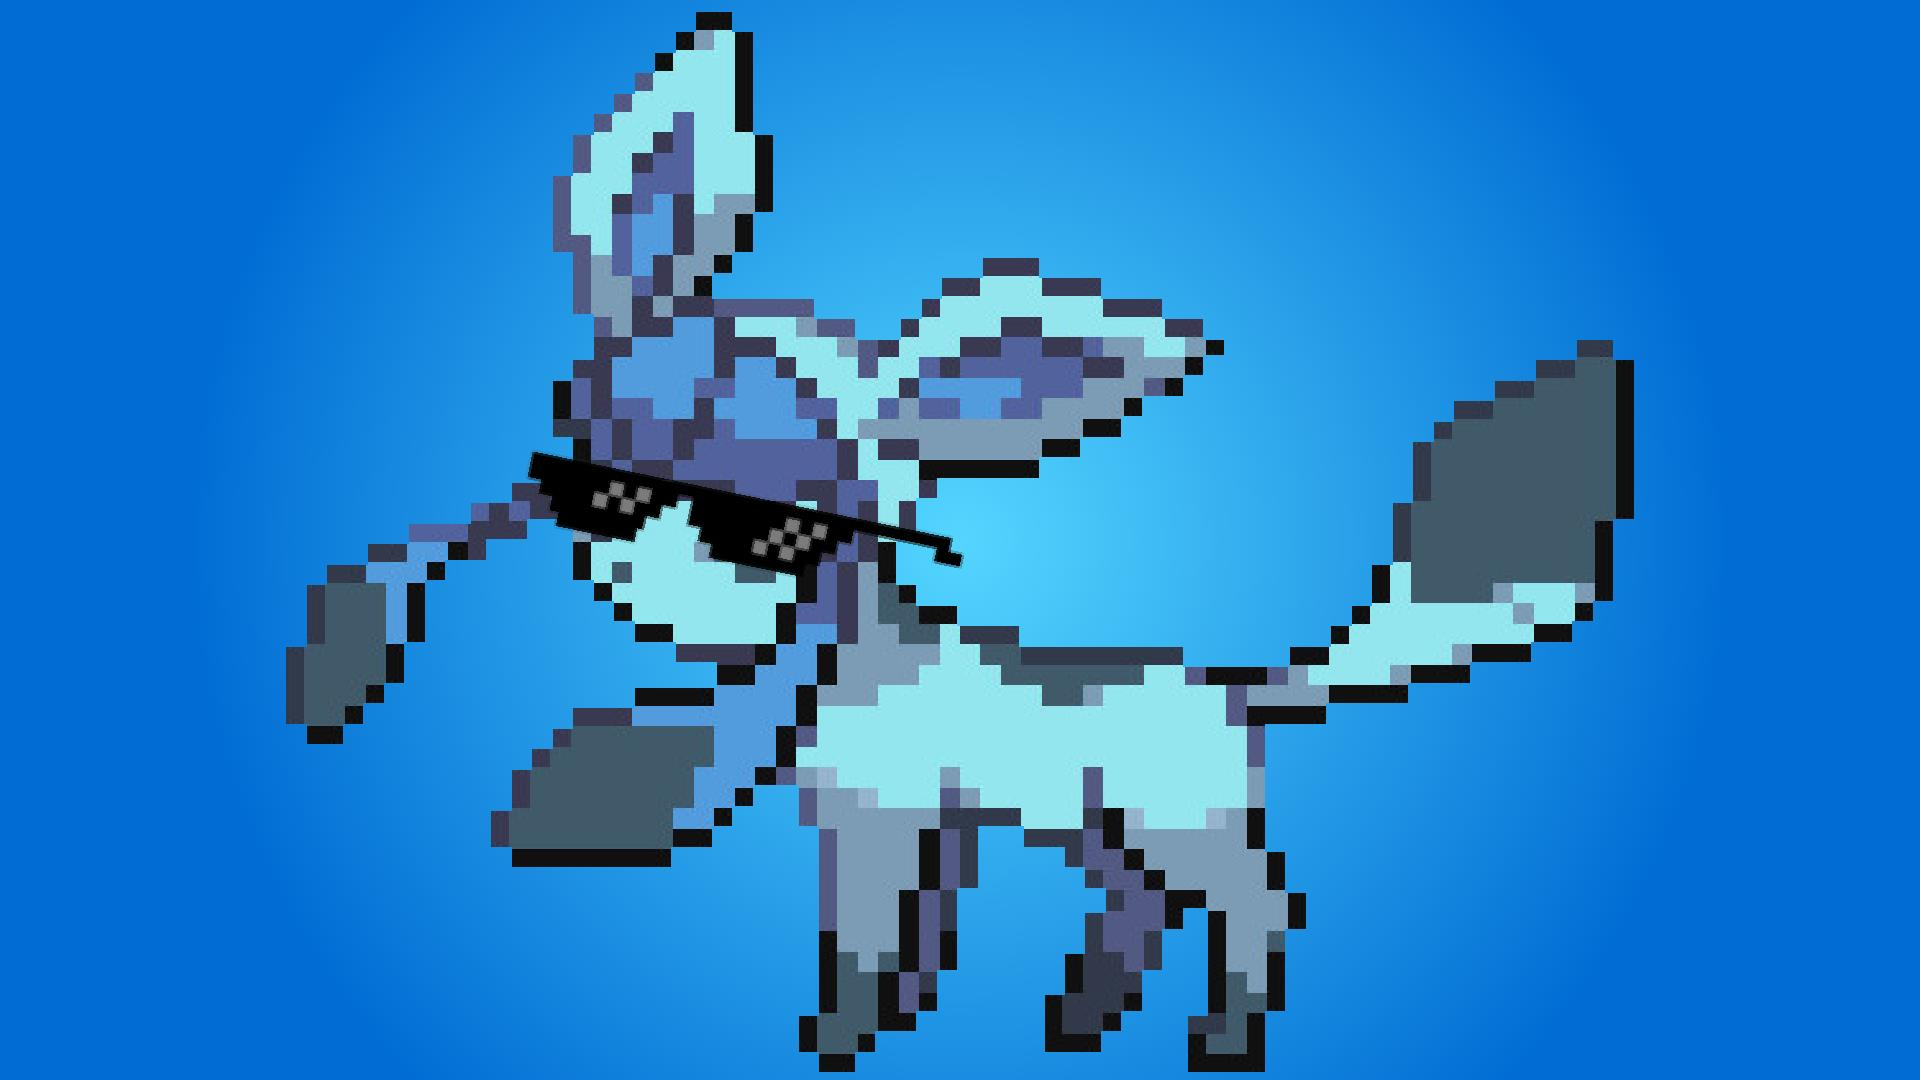 Mah Glaceon Pokemon Glaceon Pixel Art 1395054 Hd